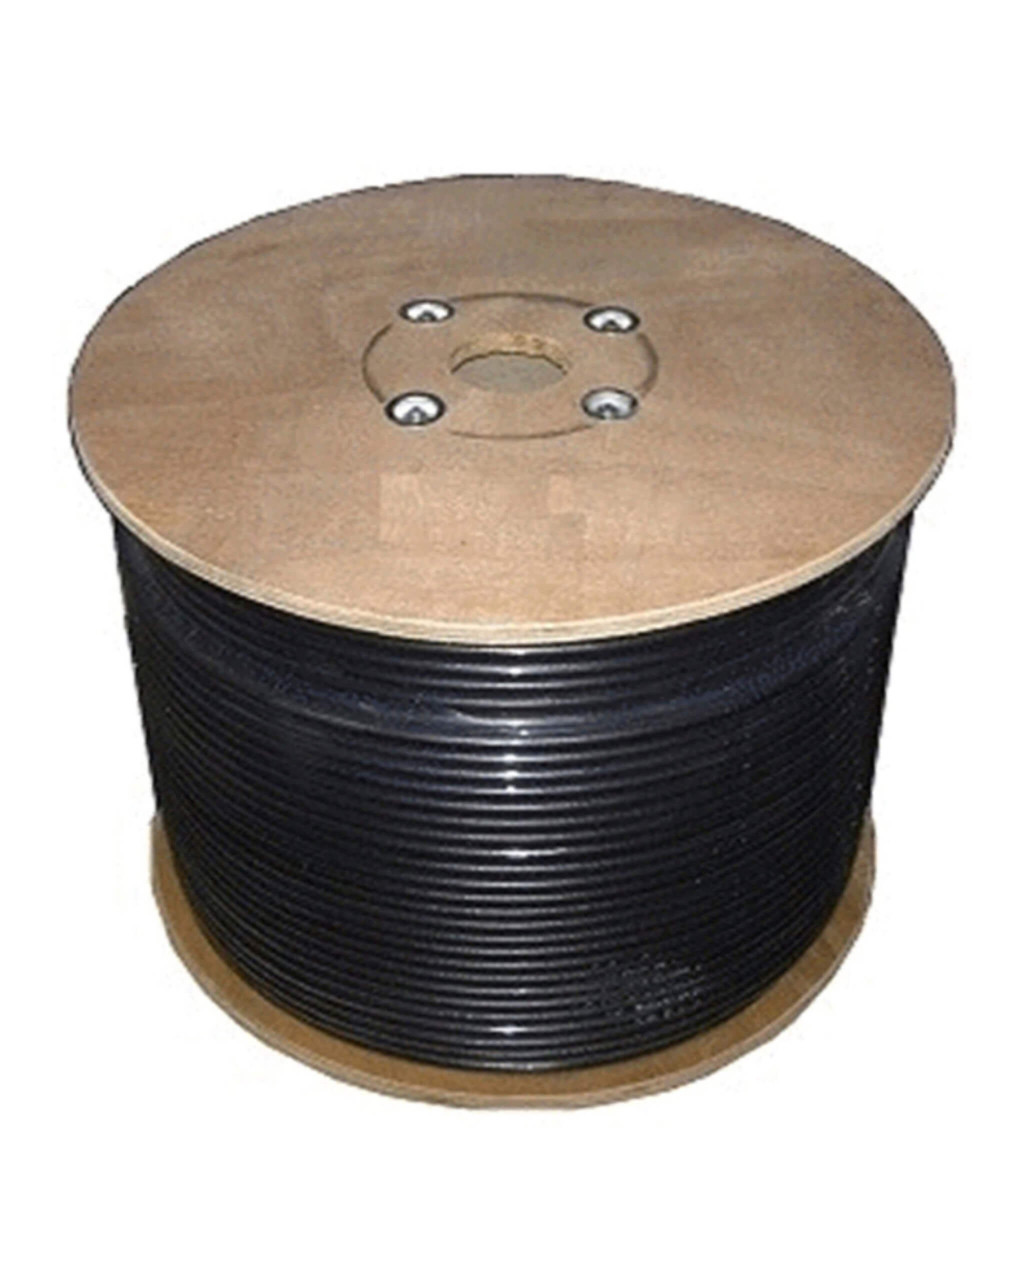 Bolton 600 Low Loss Cable - Black Spool No Connector 500 ft